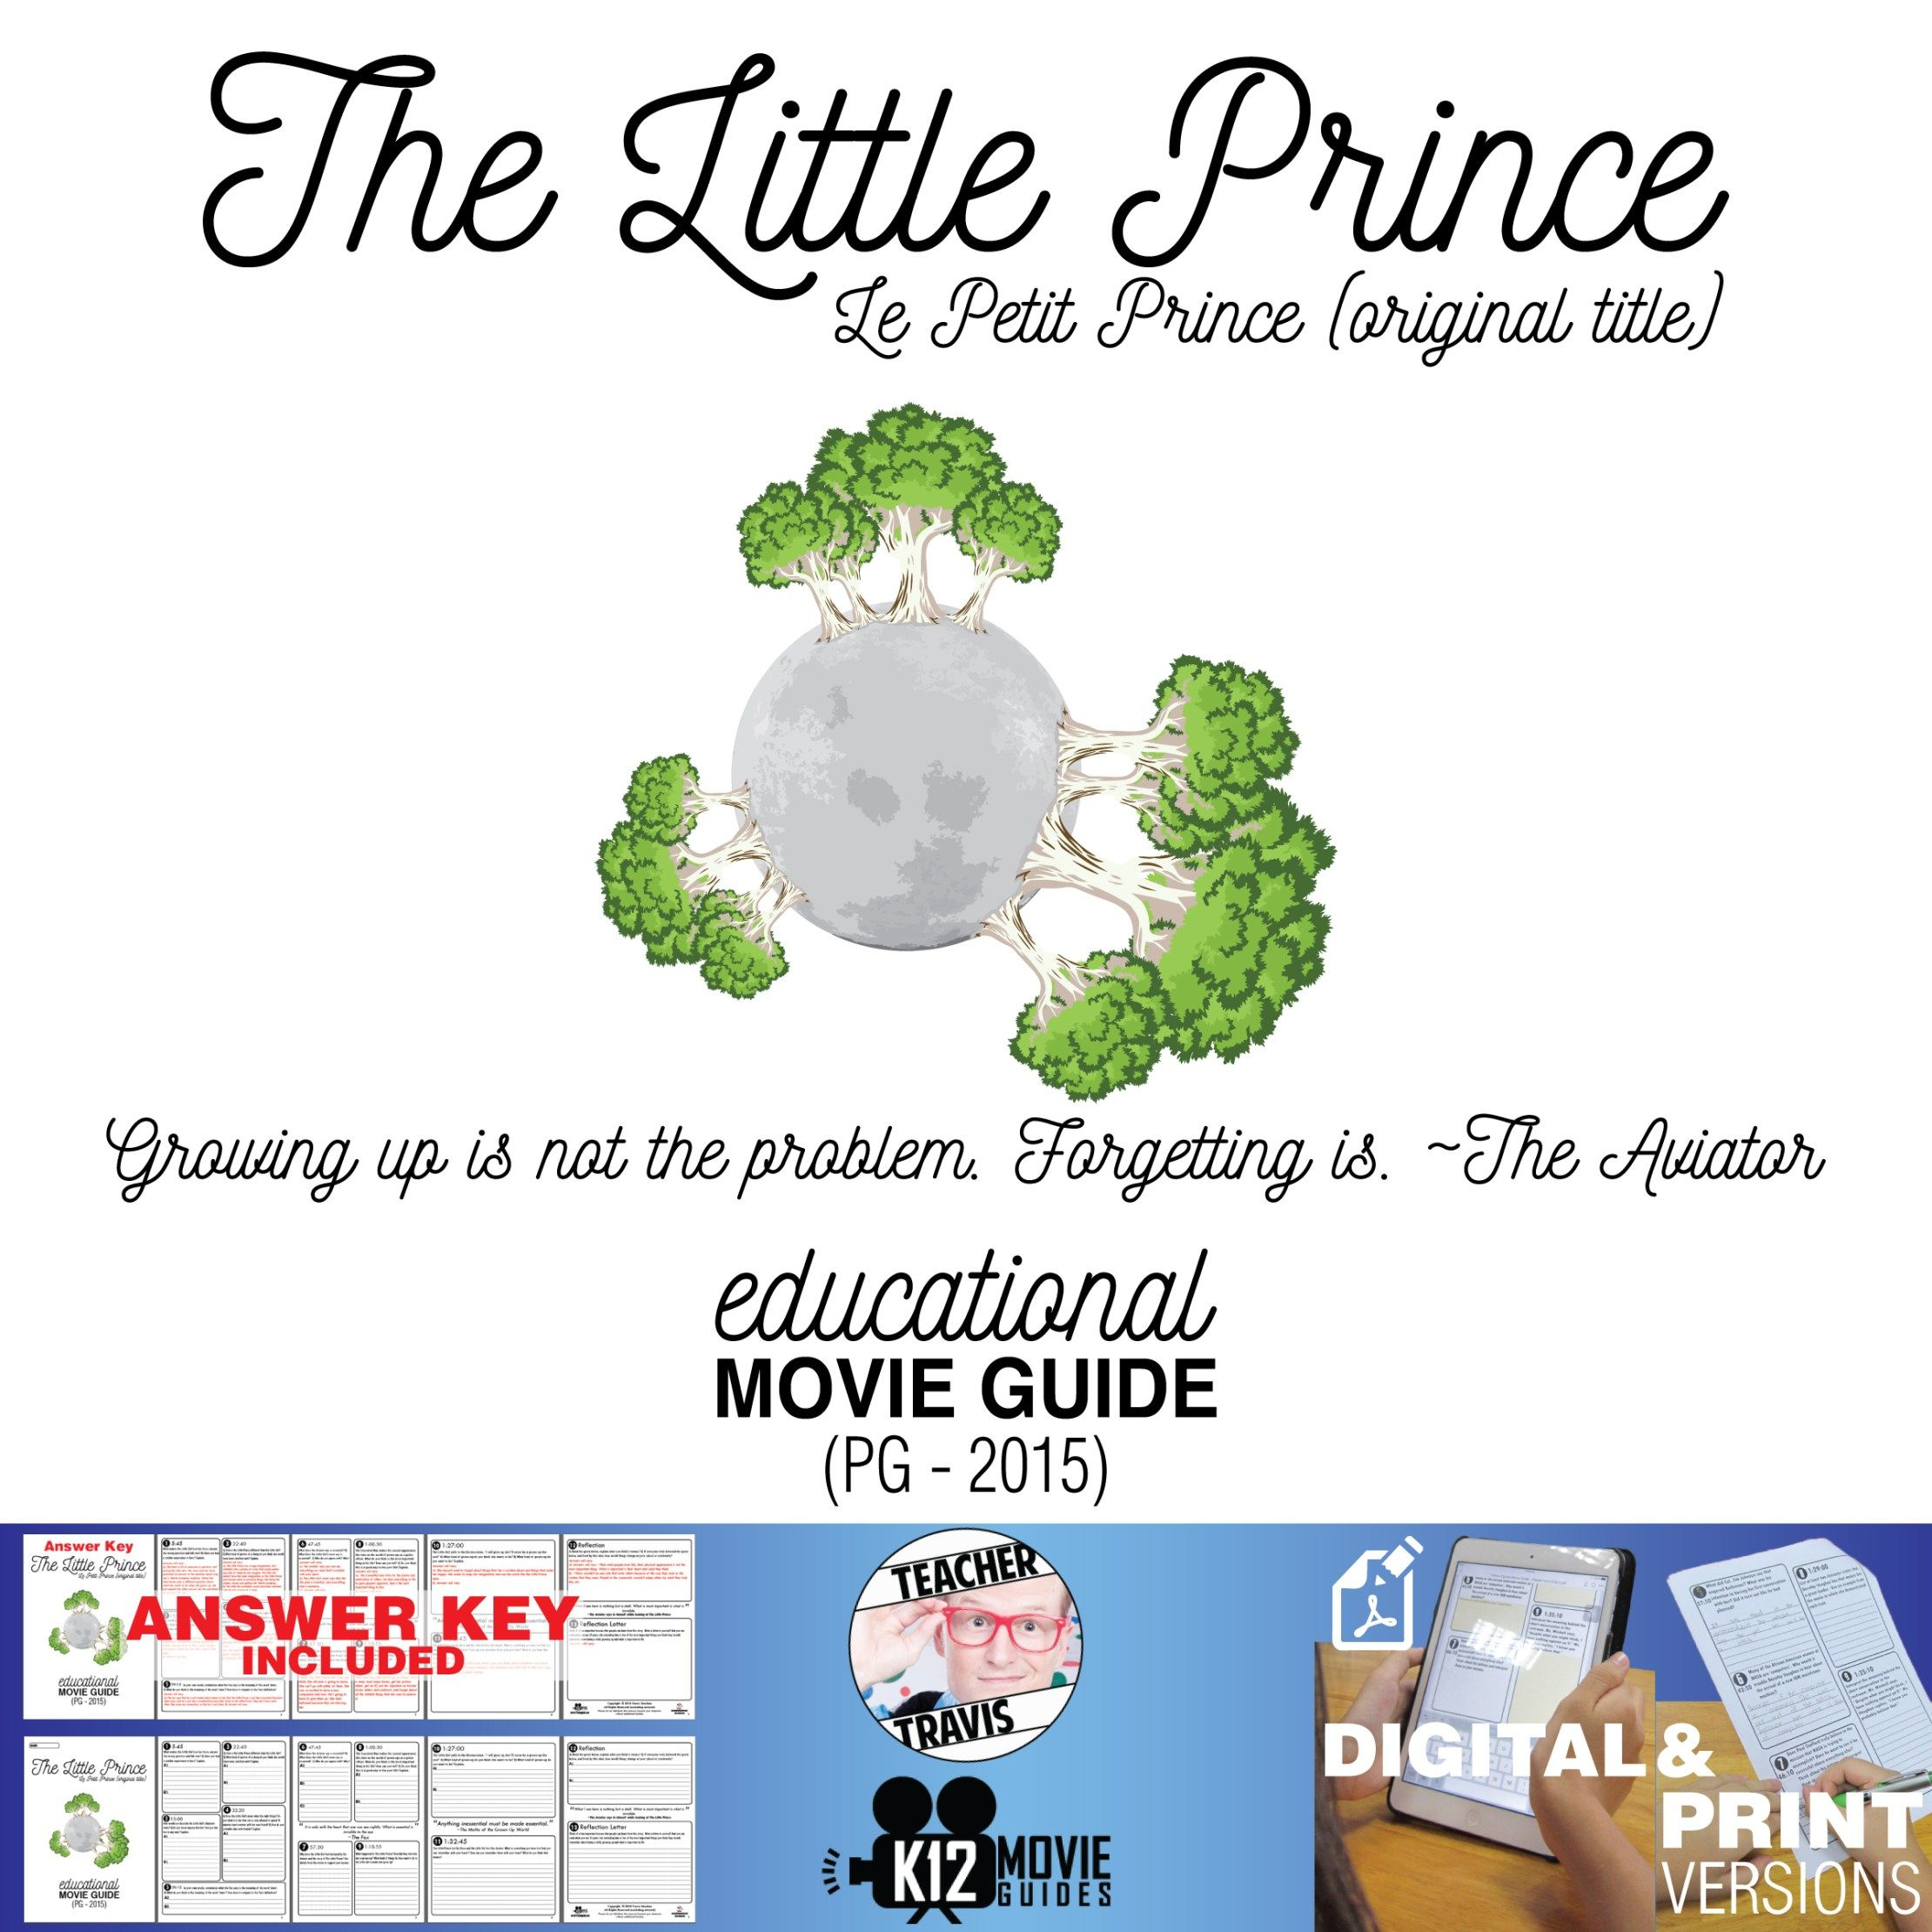 The Little Prince Movie Guide